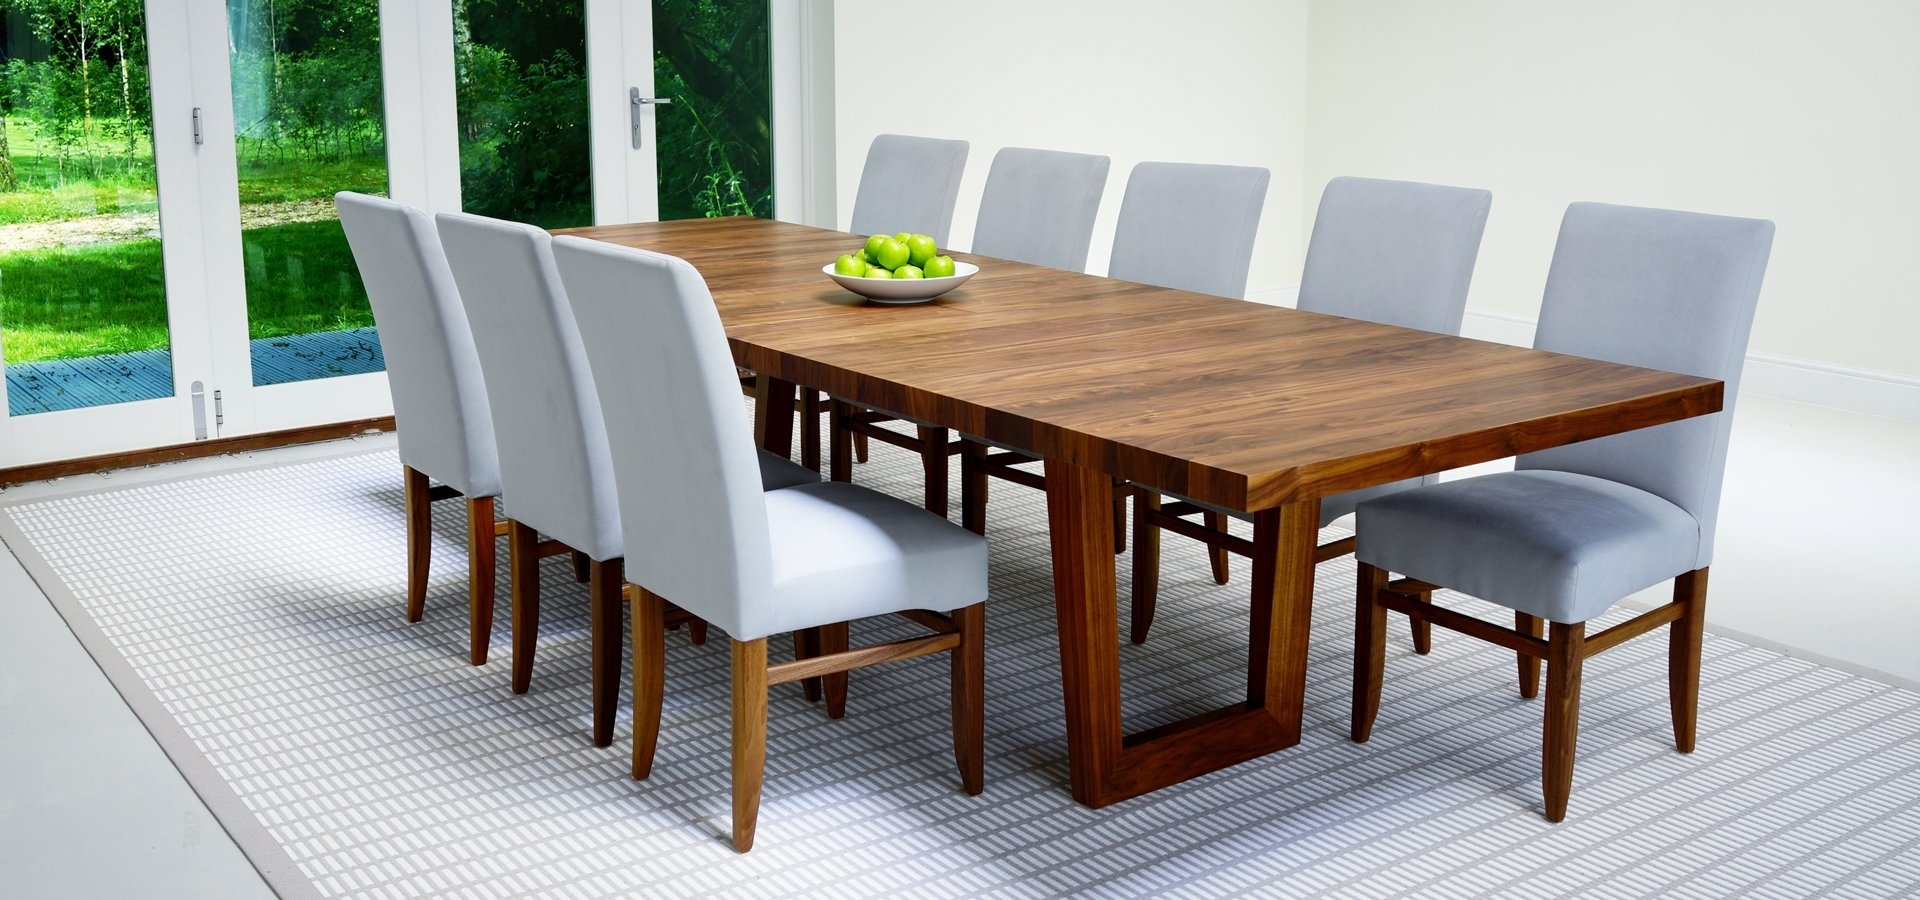 2018 Modern Extendable Dining Table Set – Castrophotos For Extending Dining Sets (Gallery 21 of 25)